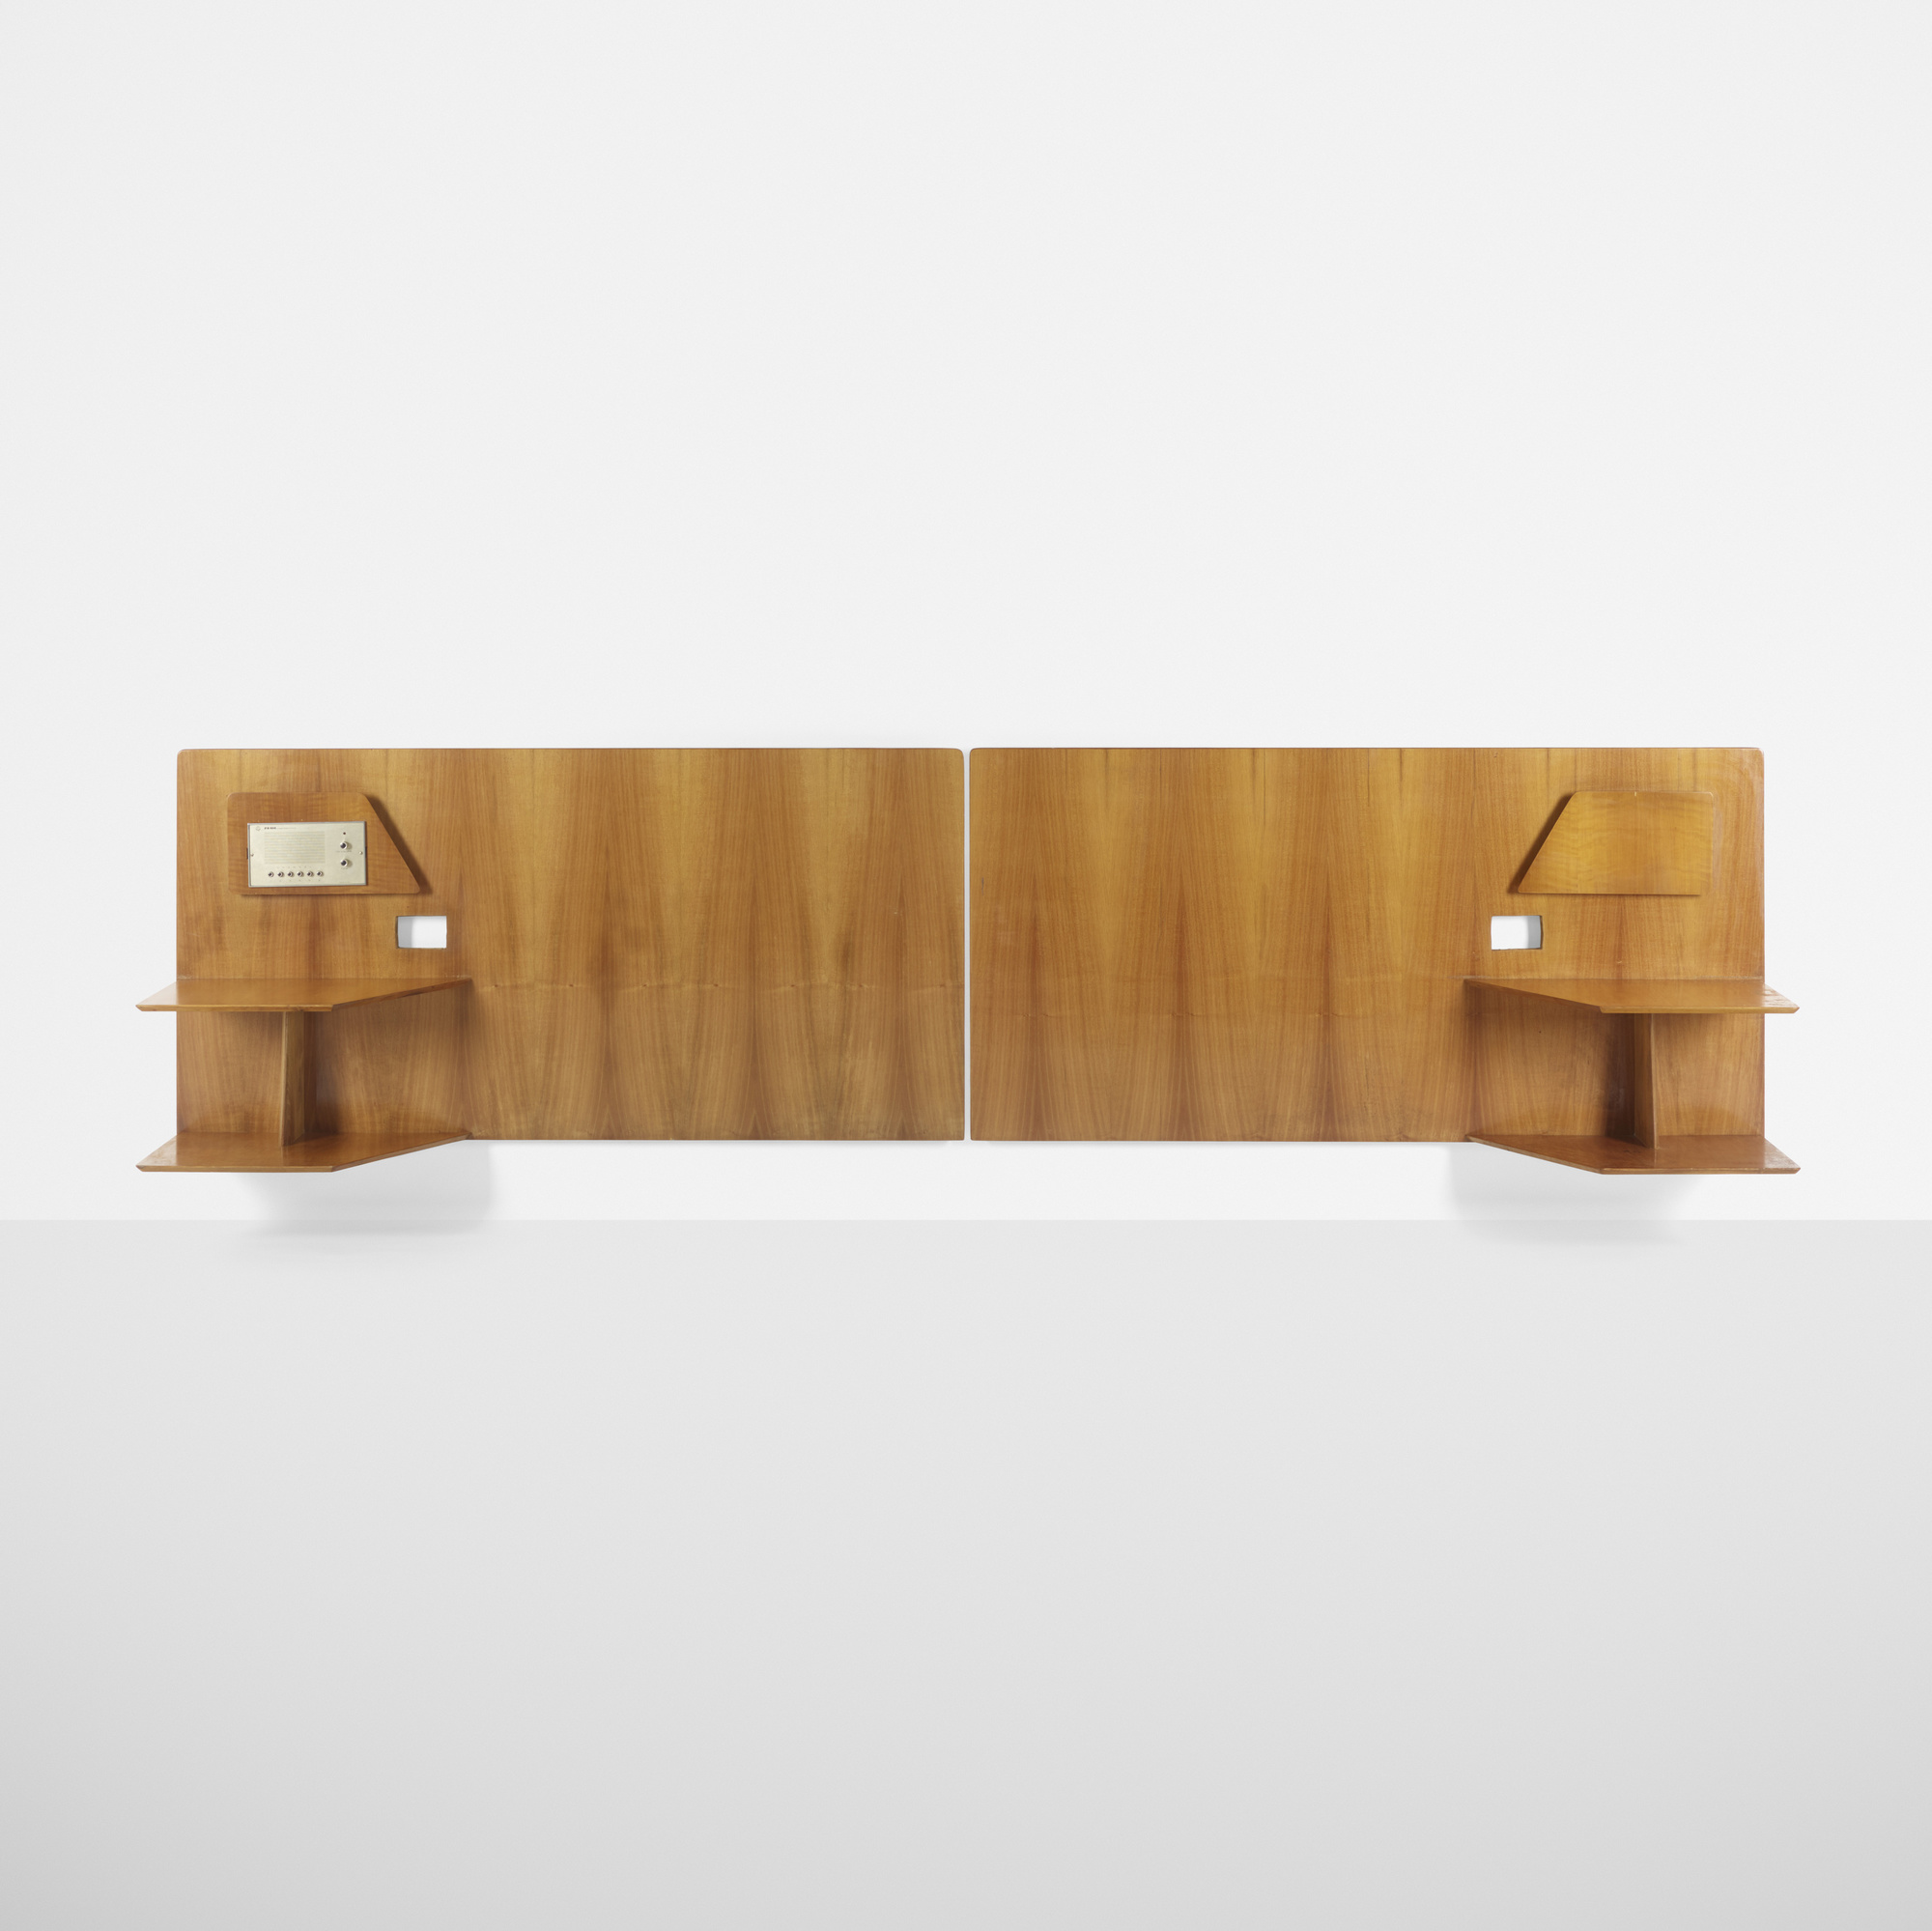 309: Gio Ponti / pair of headboards from Royal Hotel, Naples (1 of 1)